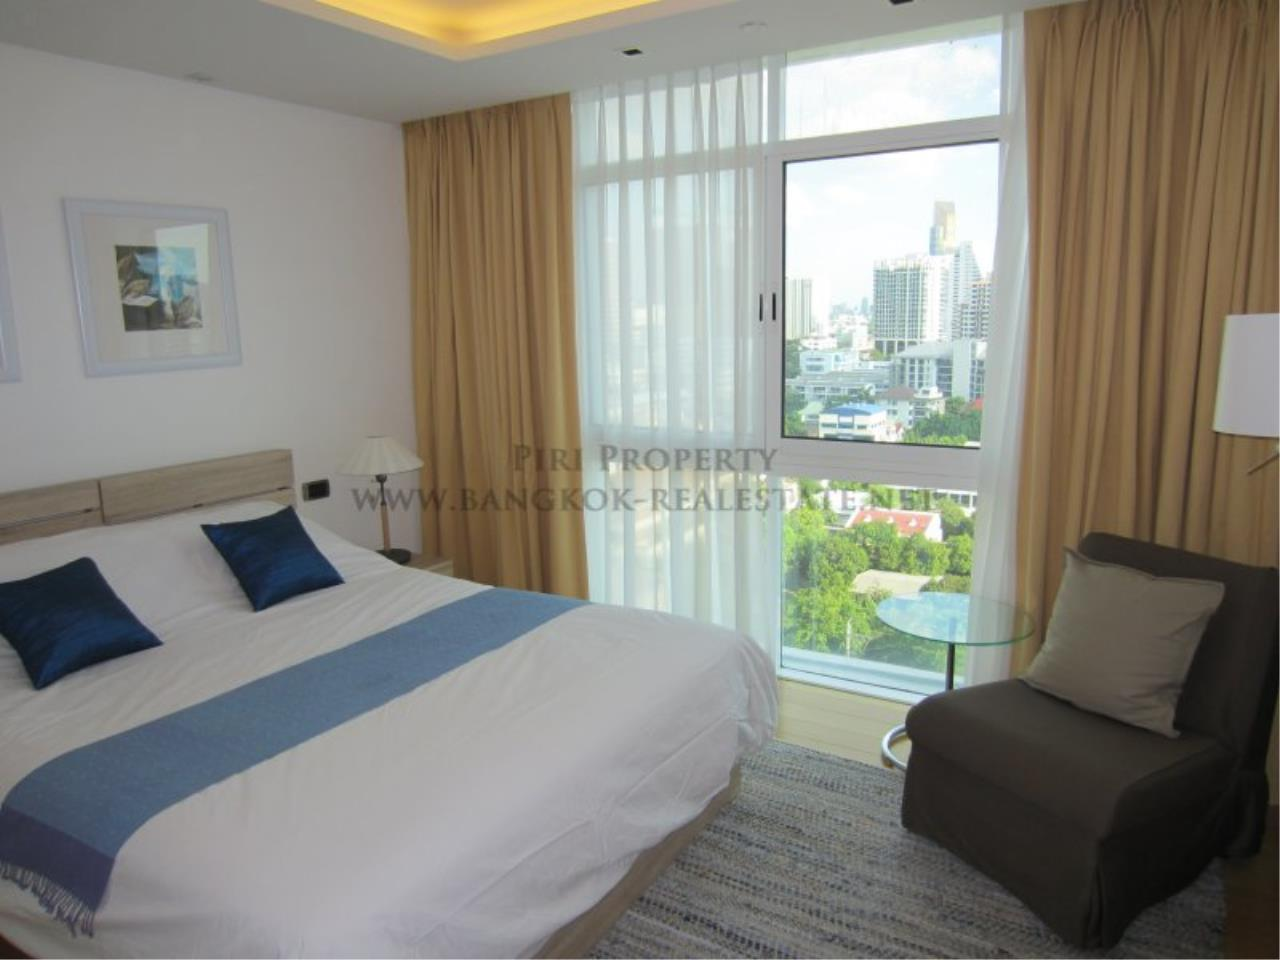 Piri Property Agency's Spacious 2 Bedroom Condo or Rent in Ari - Le Monaco 11